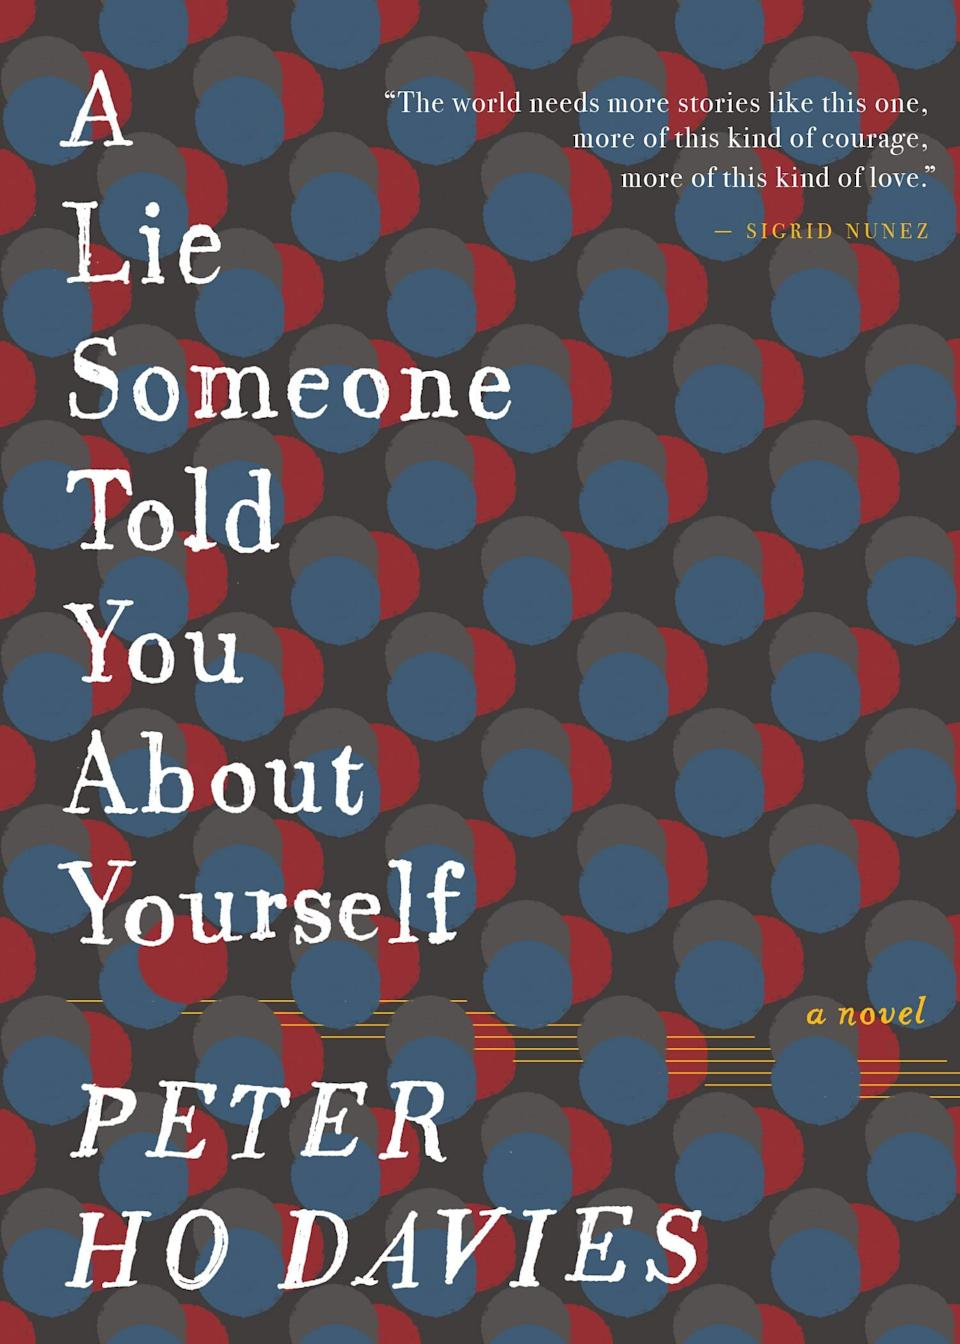 """A Lie Someone Told You About Yourself,"" by Peter Ho Davies."